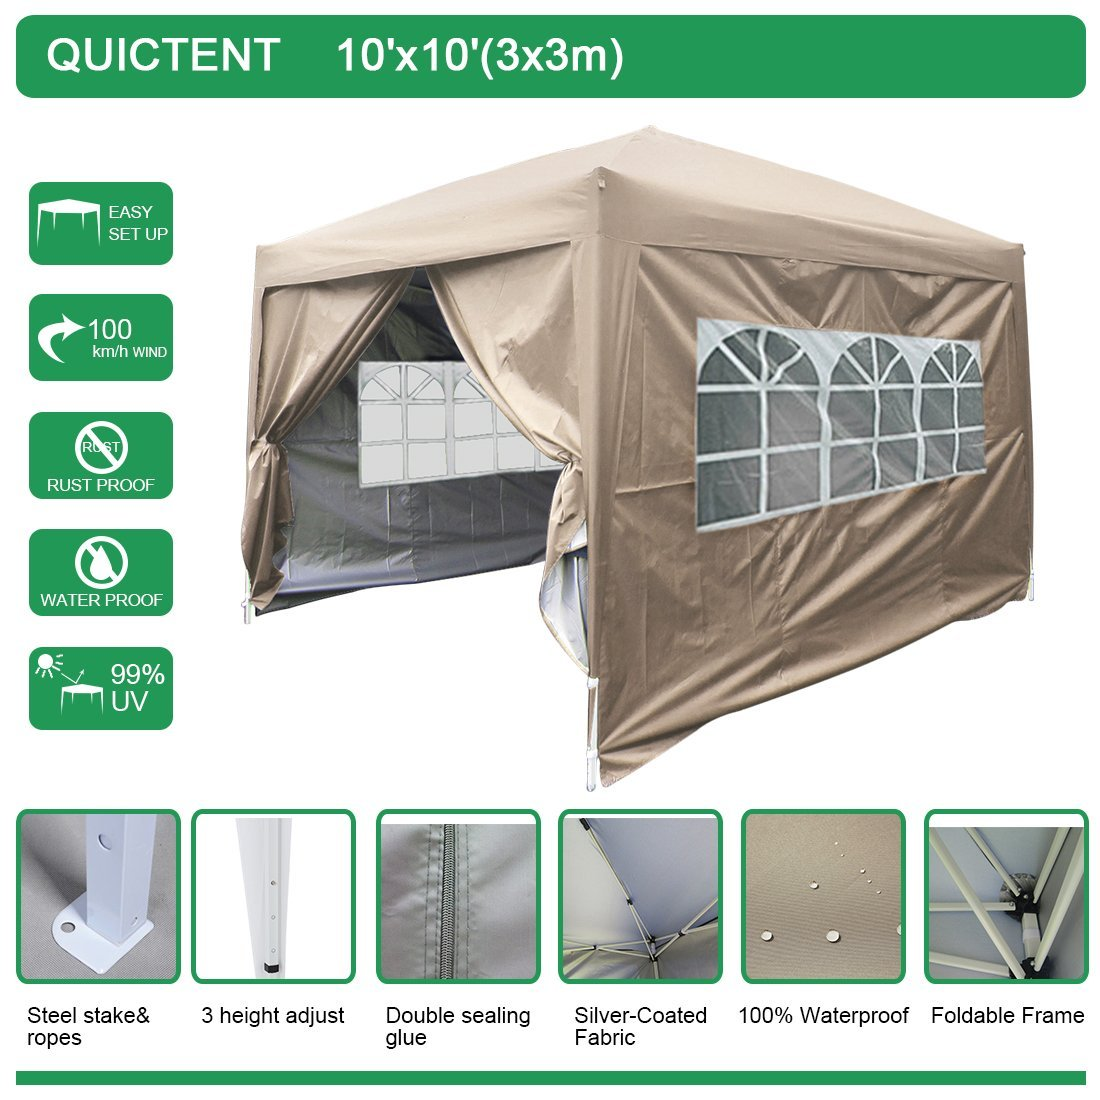 Quictent Waterproof 10x10' EZ Pop Up Canopy Gazebo Party Tent Beige Portable with Removable Sides and Heavy Duty Bag by